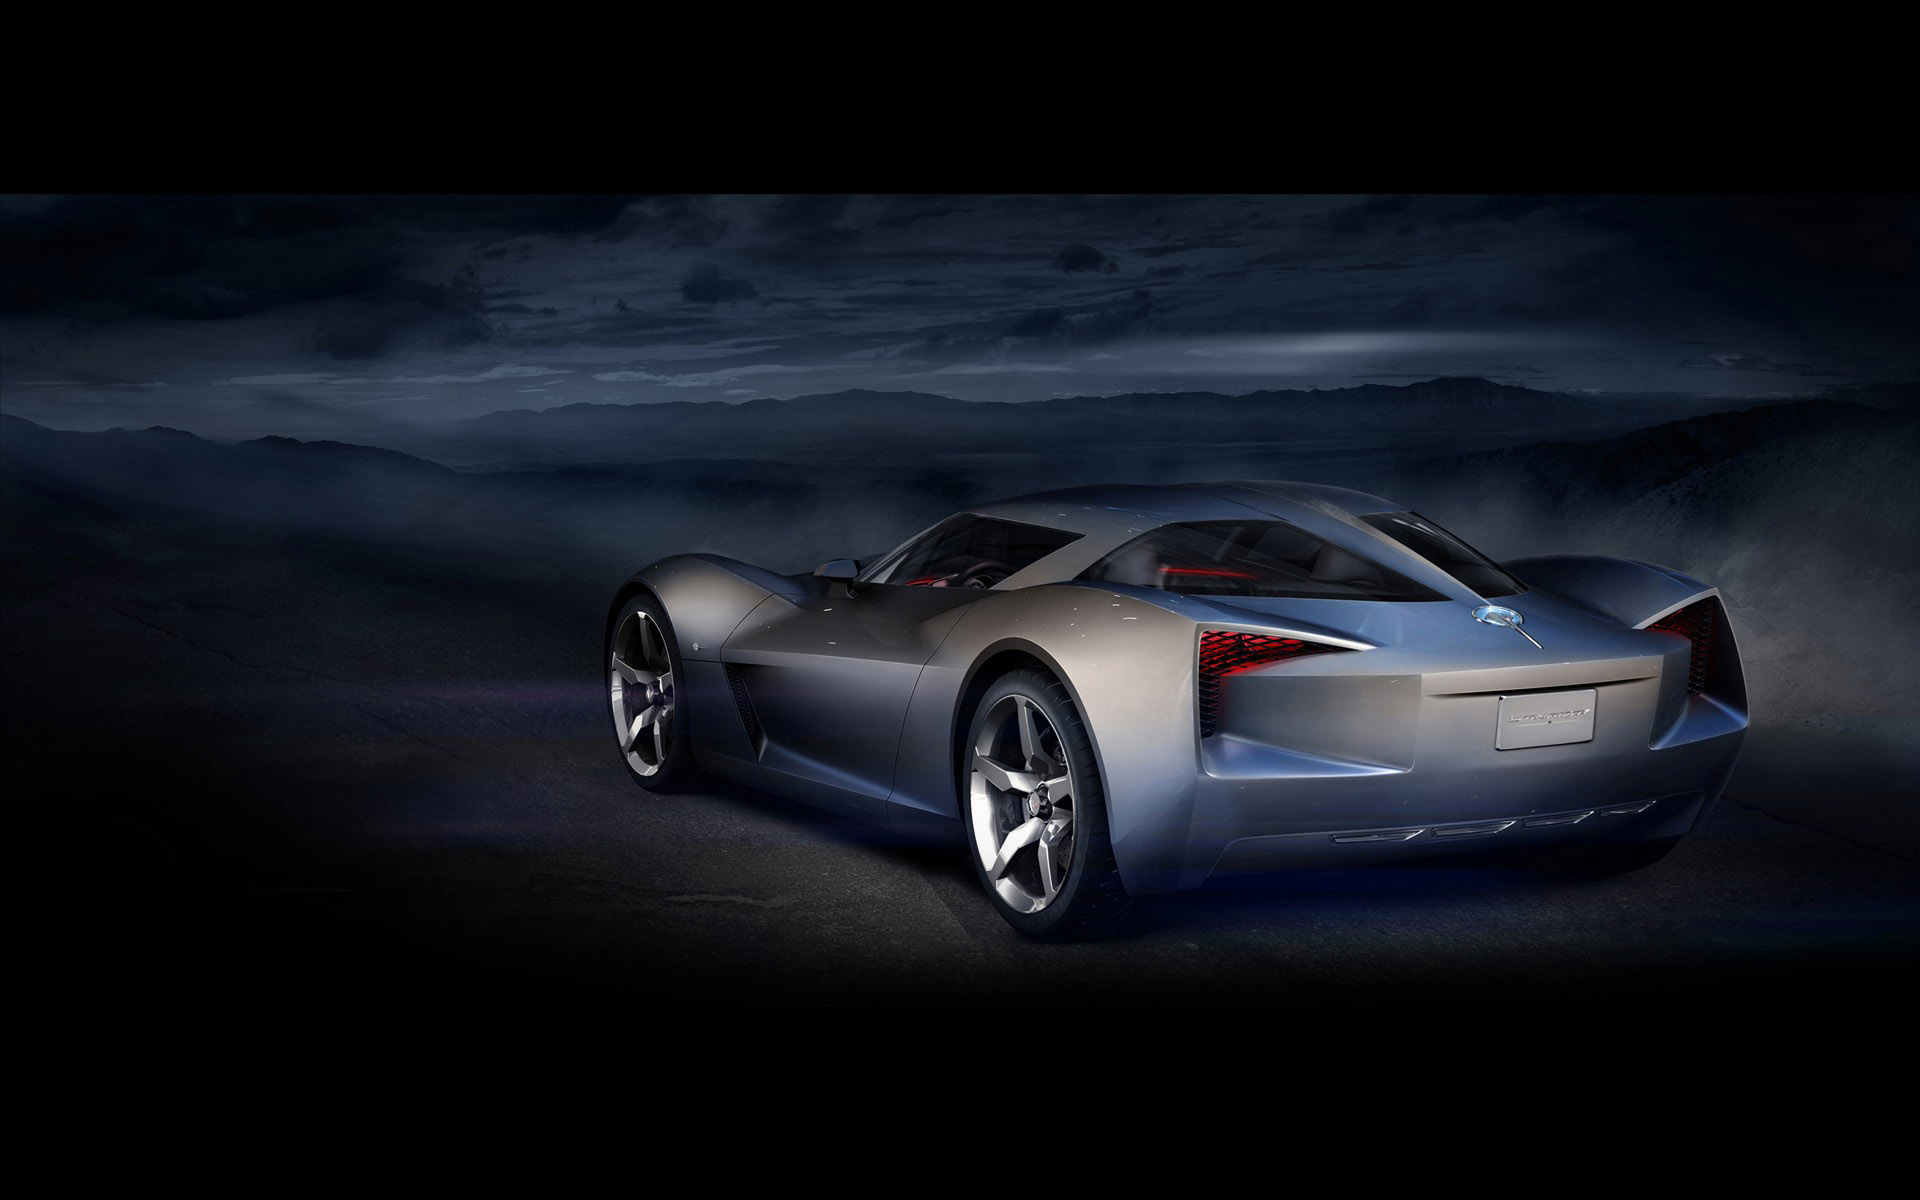 Fast car wallpapers and images   wallpapers pictures photos 1920x1200